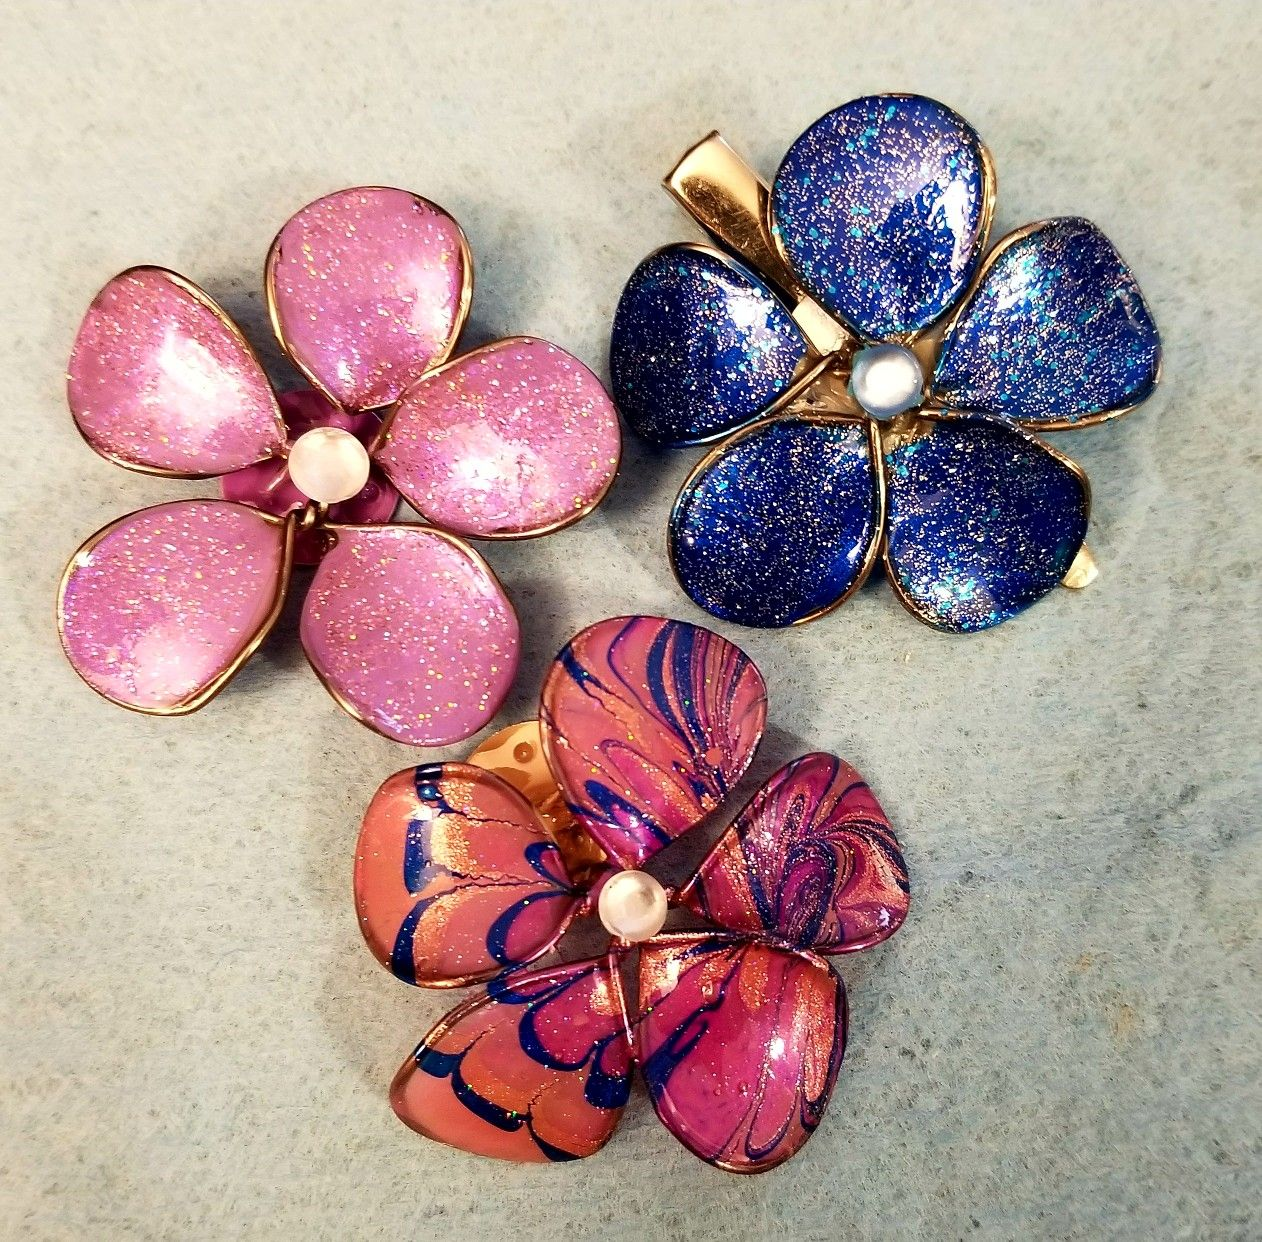 Wire, wood glue and nail polish flowers | crafty | Pinterest ...